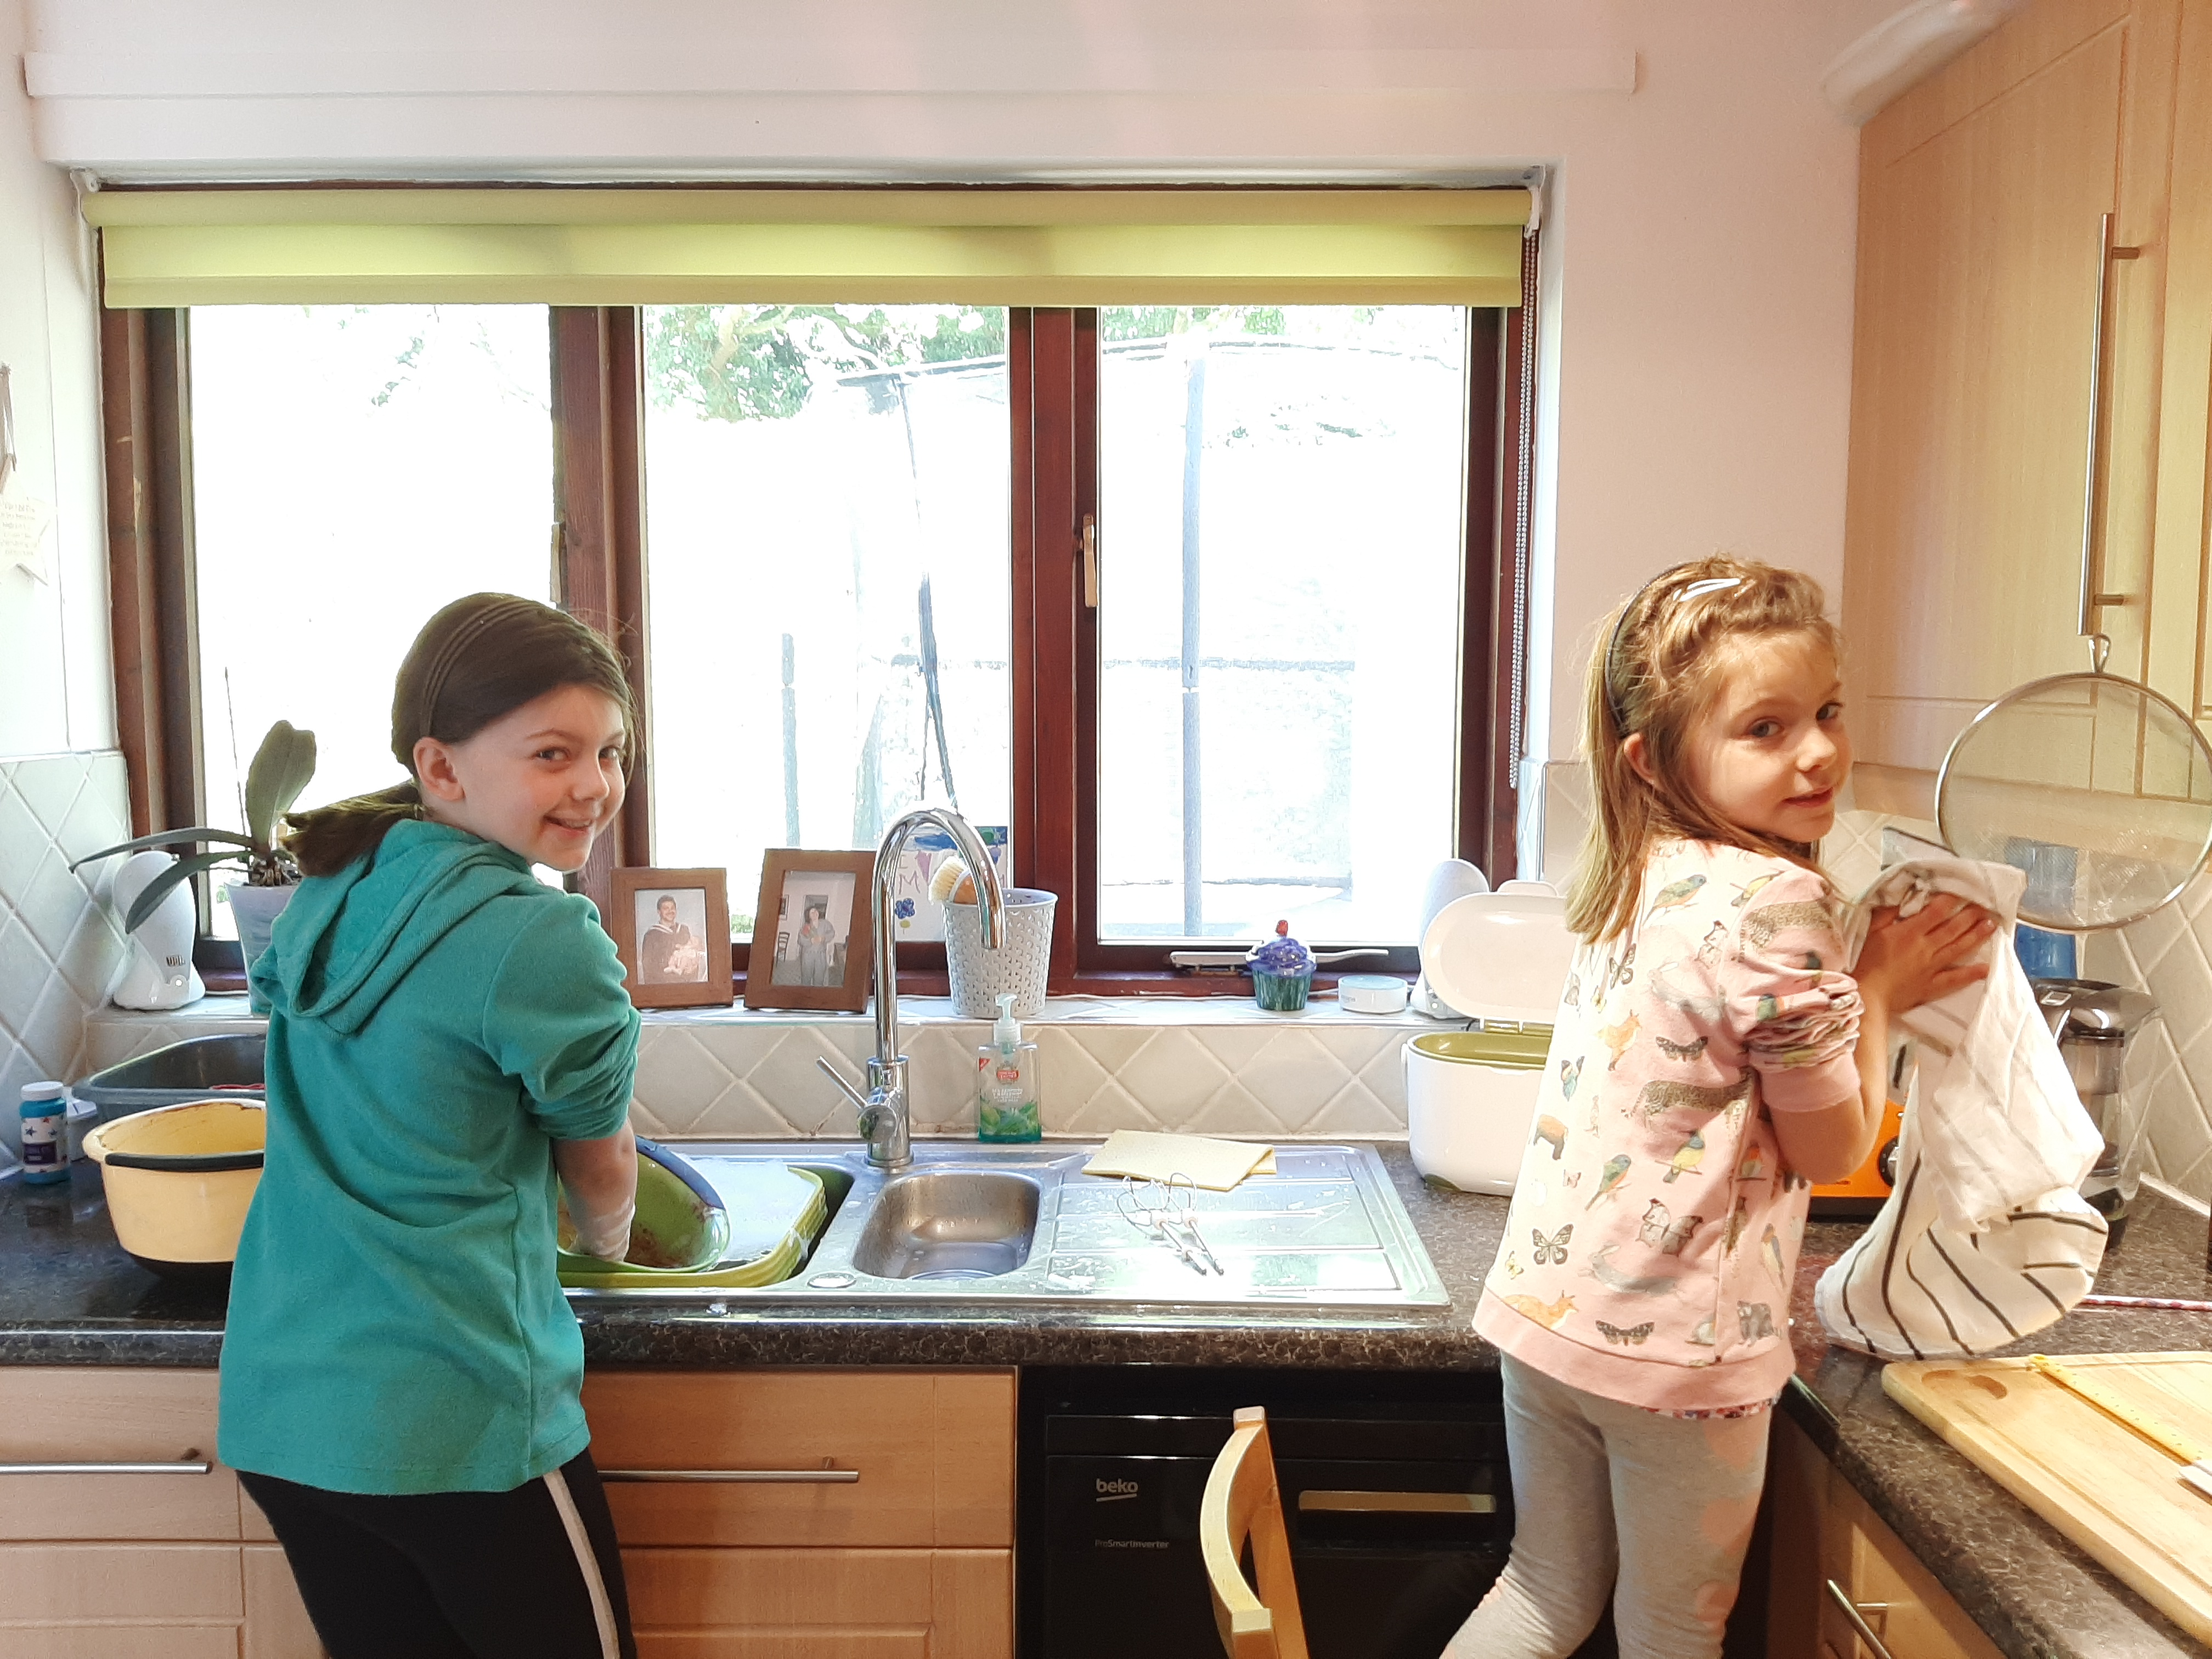 Home Schooling - learning life skills such as washing up.